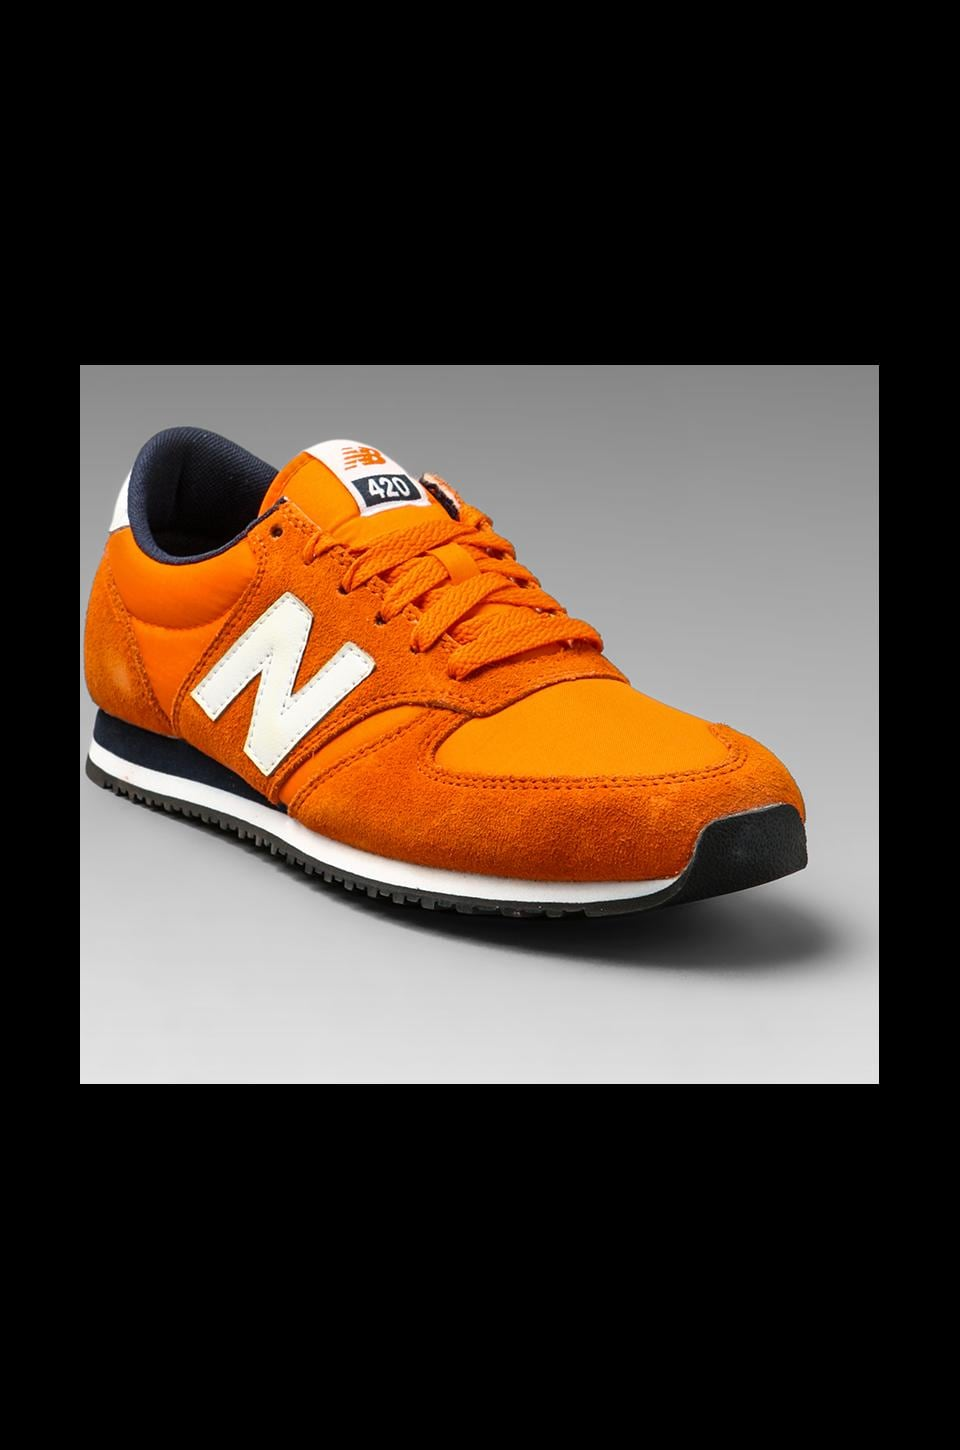 New Balance Classic U420 Suede/Nylon in Orange/Navy/White